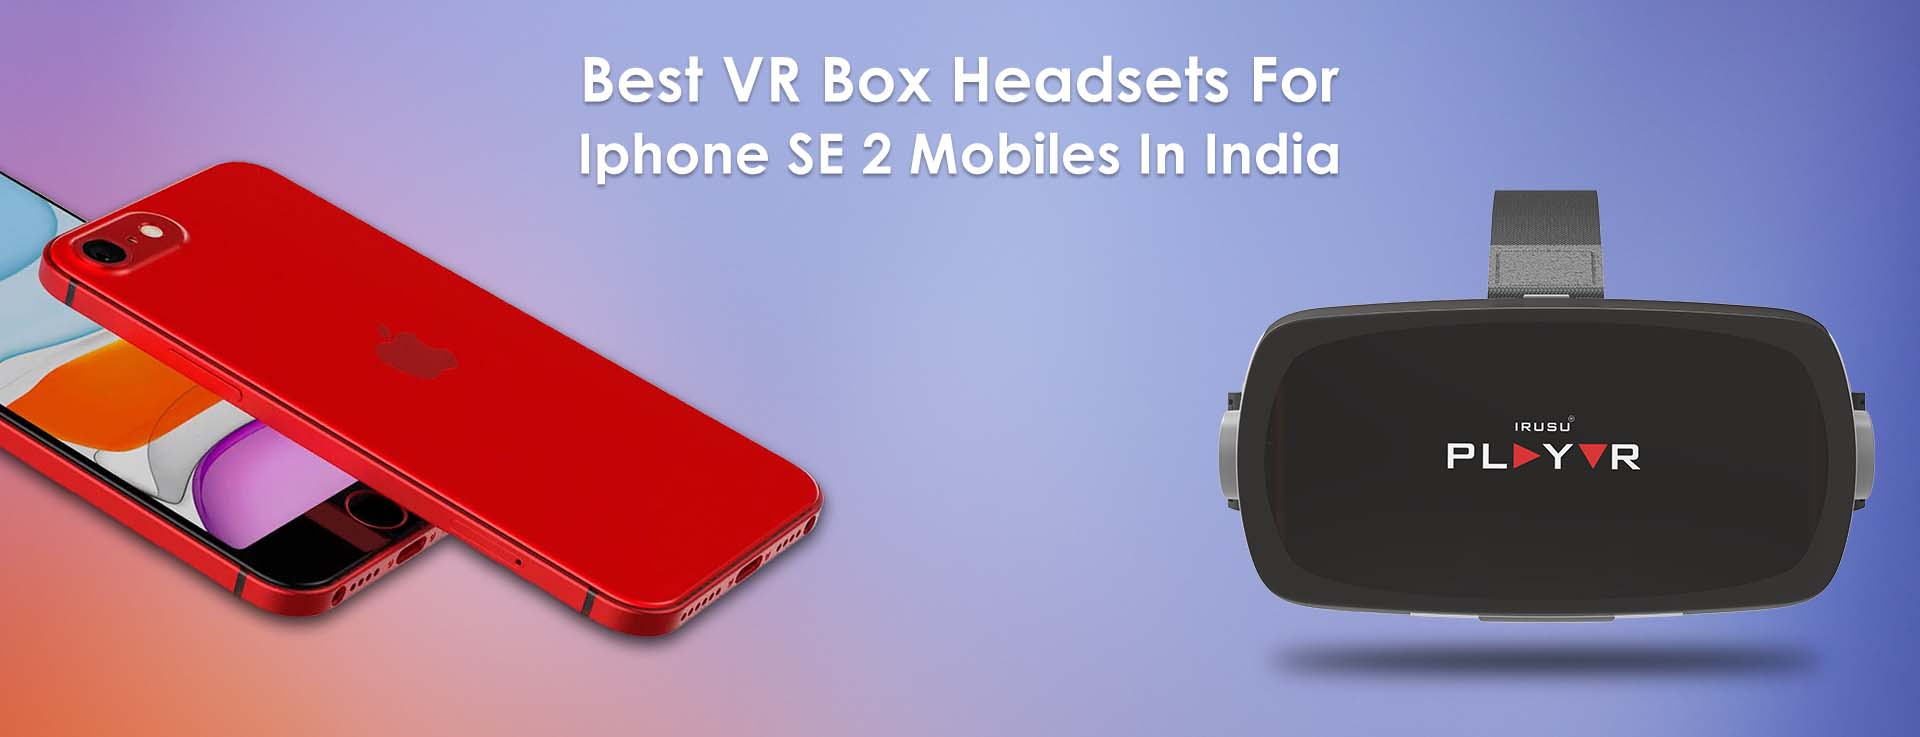 Supported Vr Headsets For Apple Iphone Mobiles In India Irusu